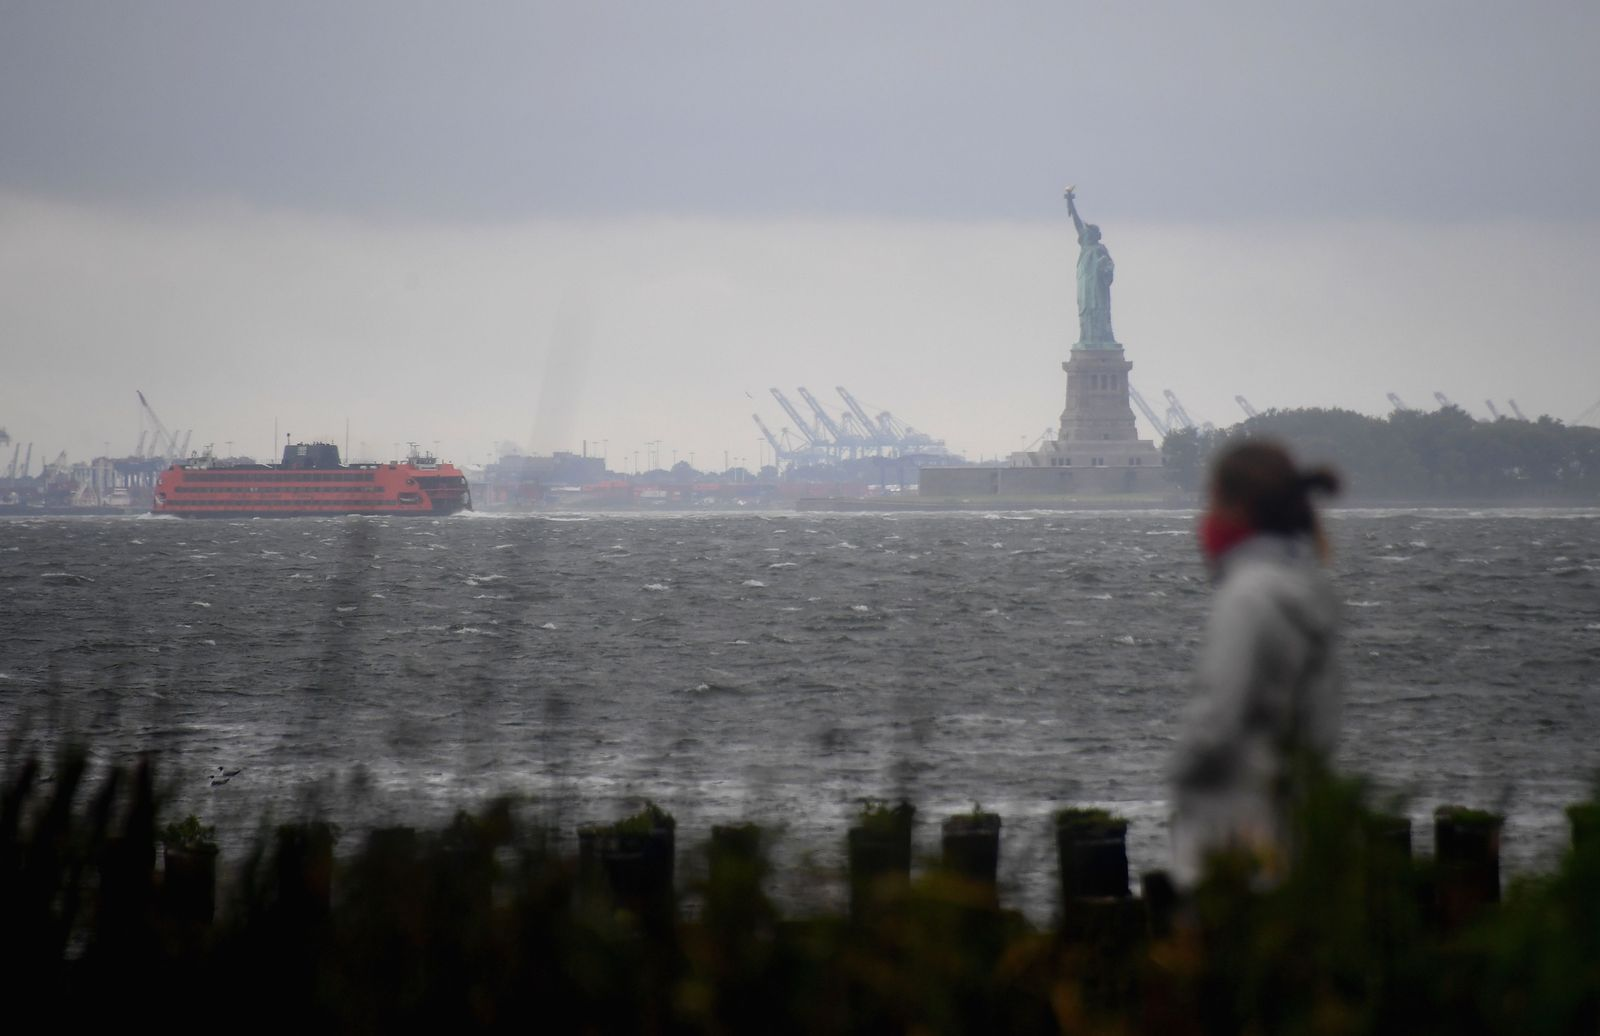 Tropical Storm Isaiah Hits New York City Bringing Heavy Rain